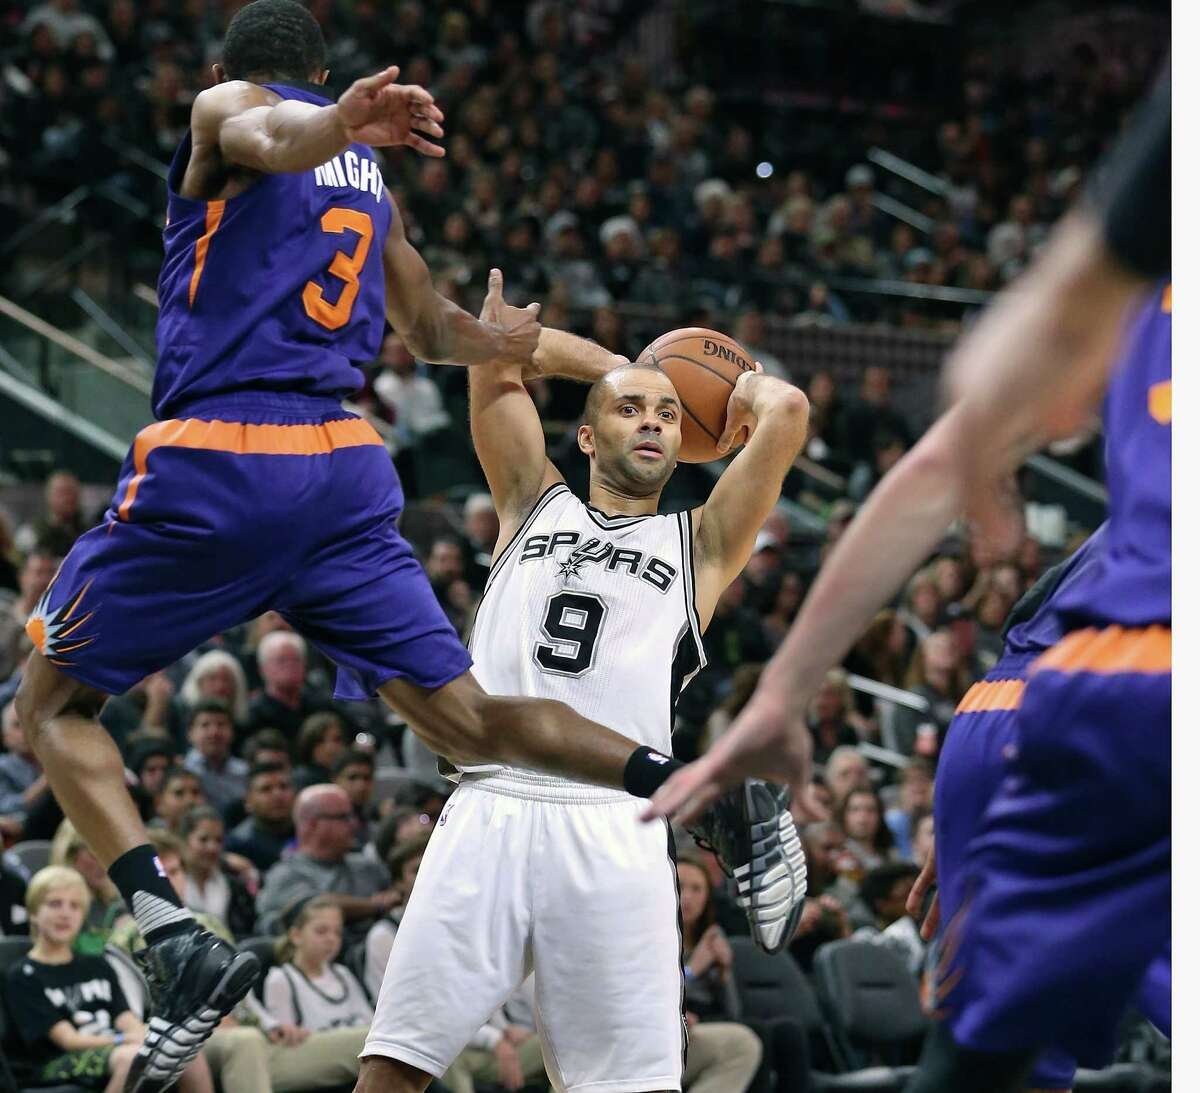 Tony Parker sends Brandon Knight flying as the Spurs host the Suns at the AT&T Center on December 30, 2015.